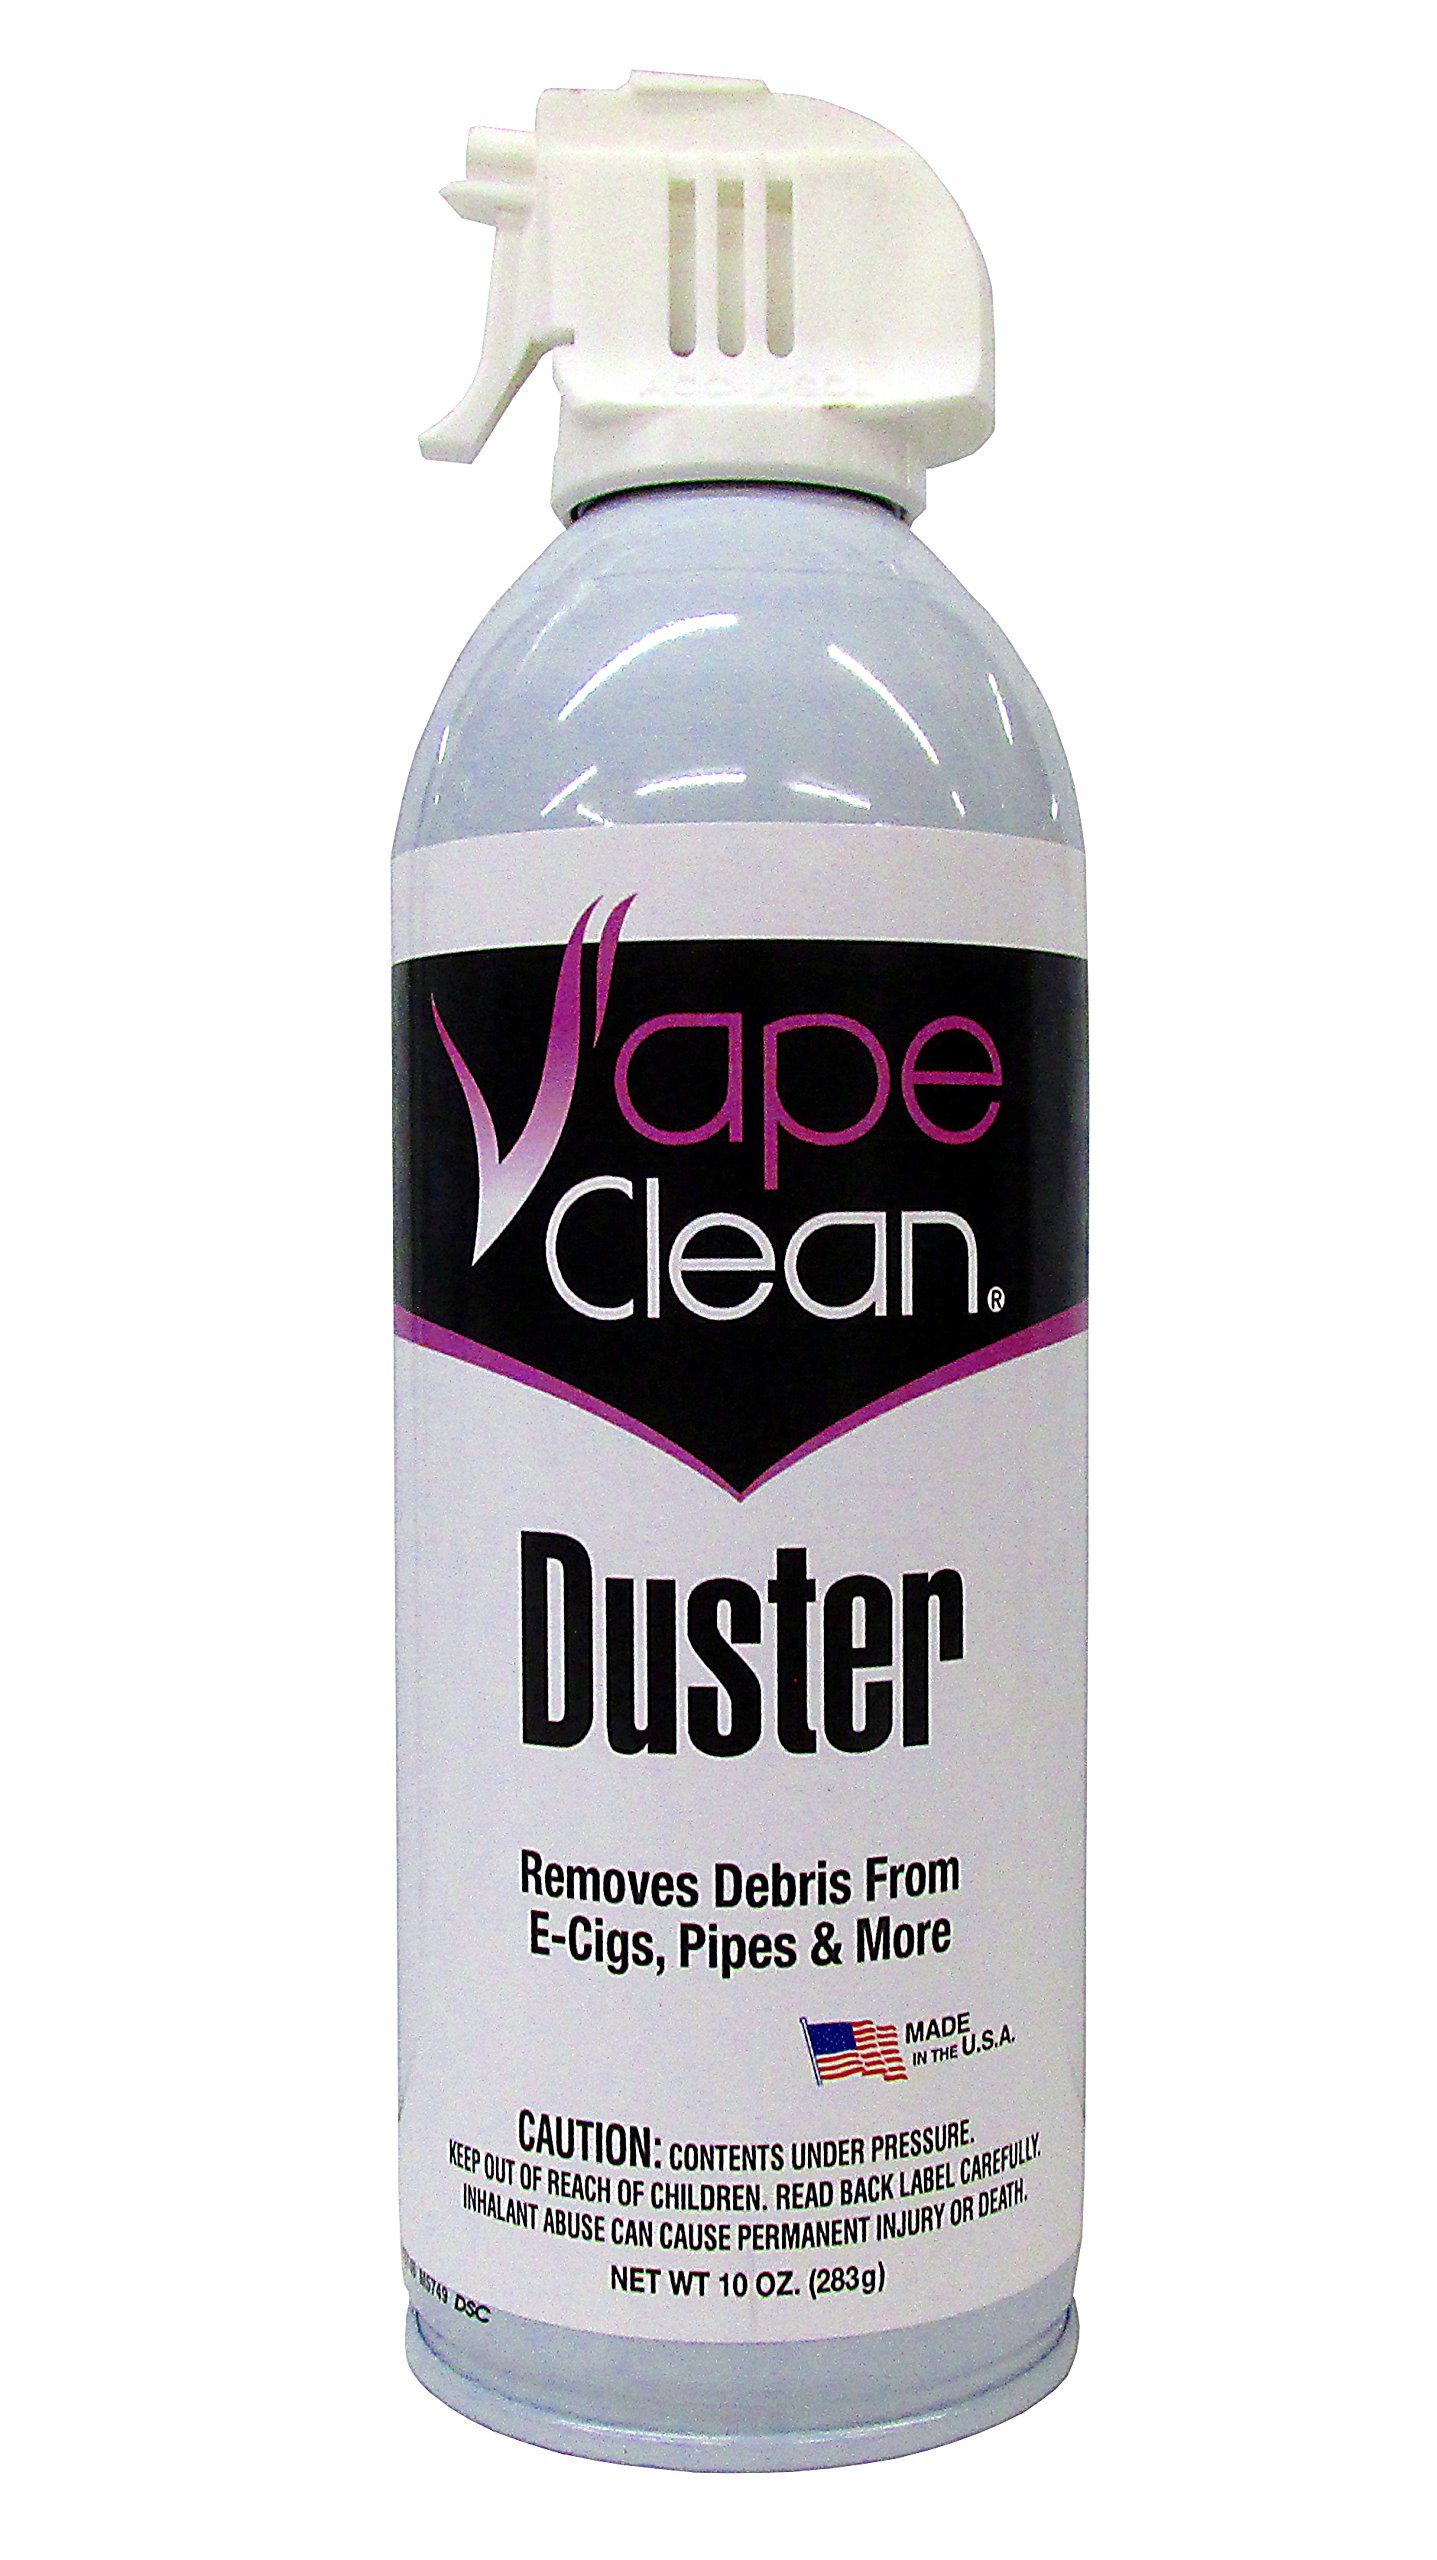 Max-Pro Vape Clean Duster 10oz E Cig and Pipe Cleaner